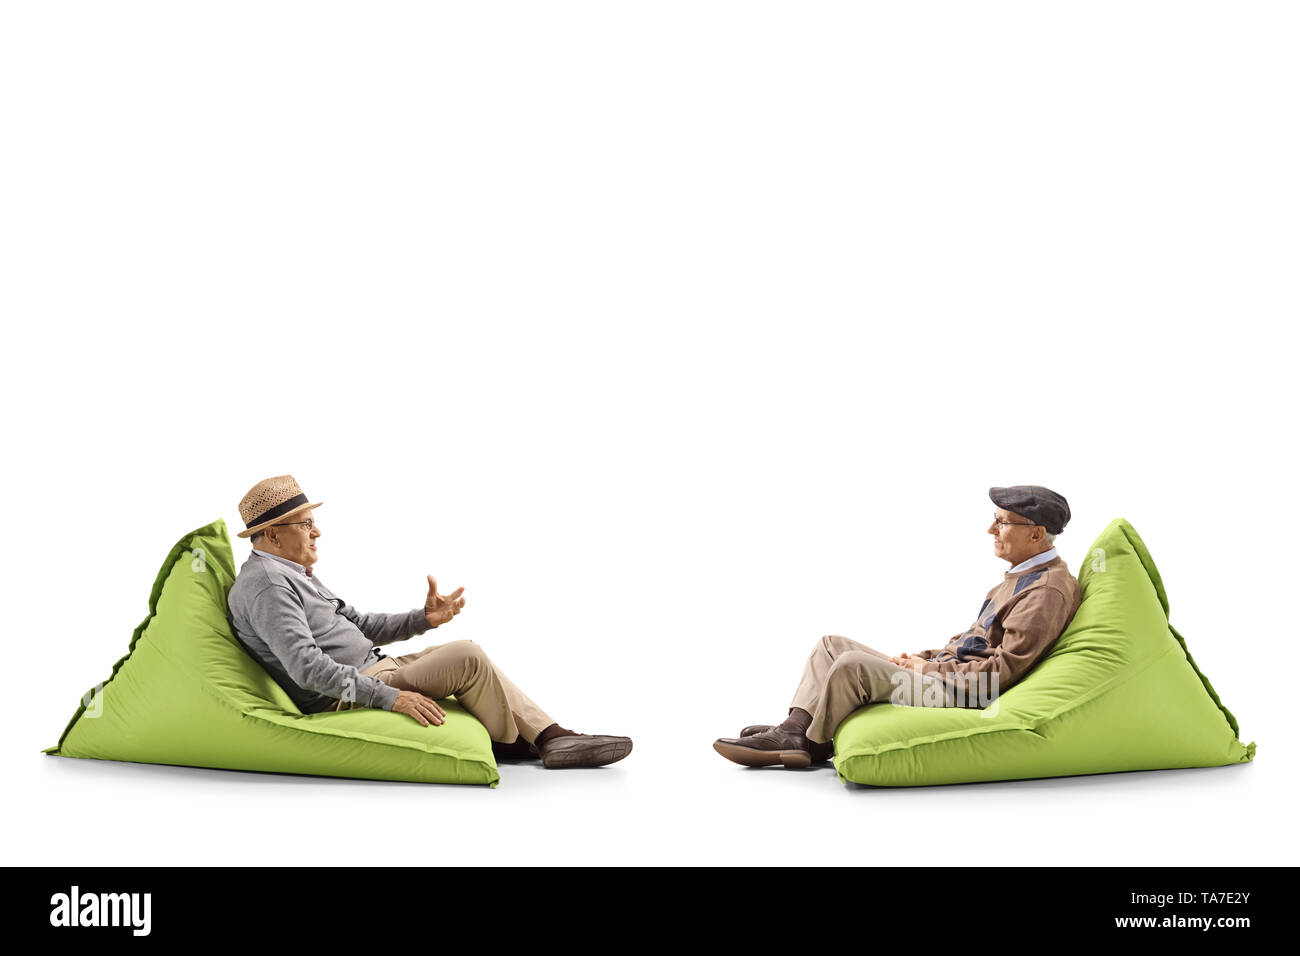 Full length profile shot of two seniors talking and sitting on green bean bags isolated on white background - Stock Image